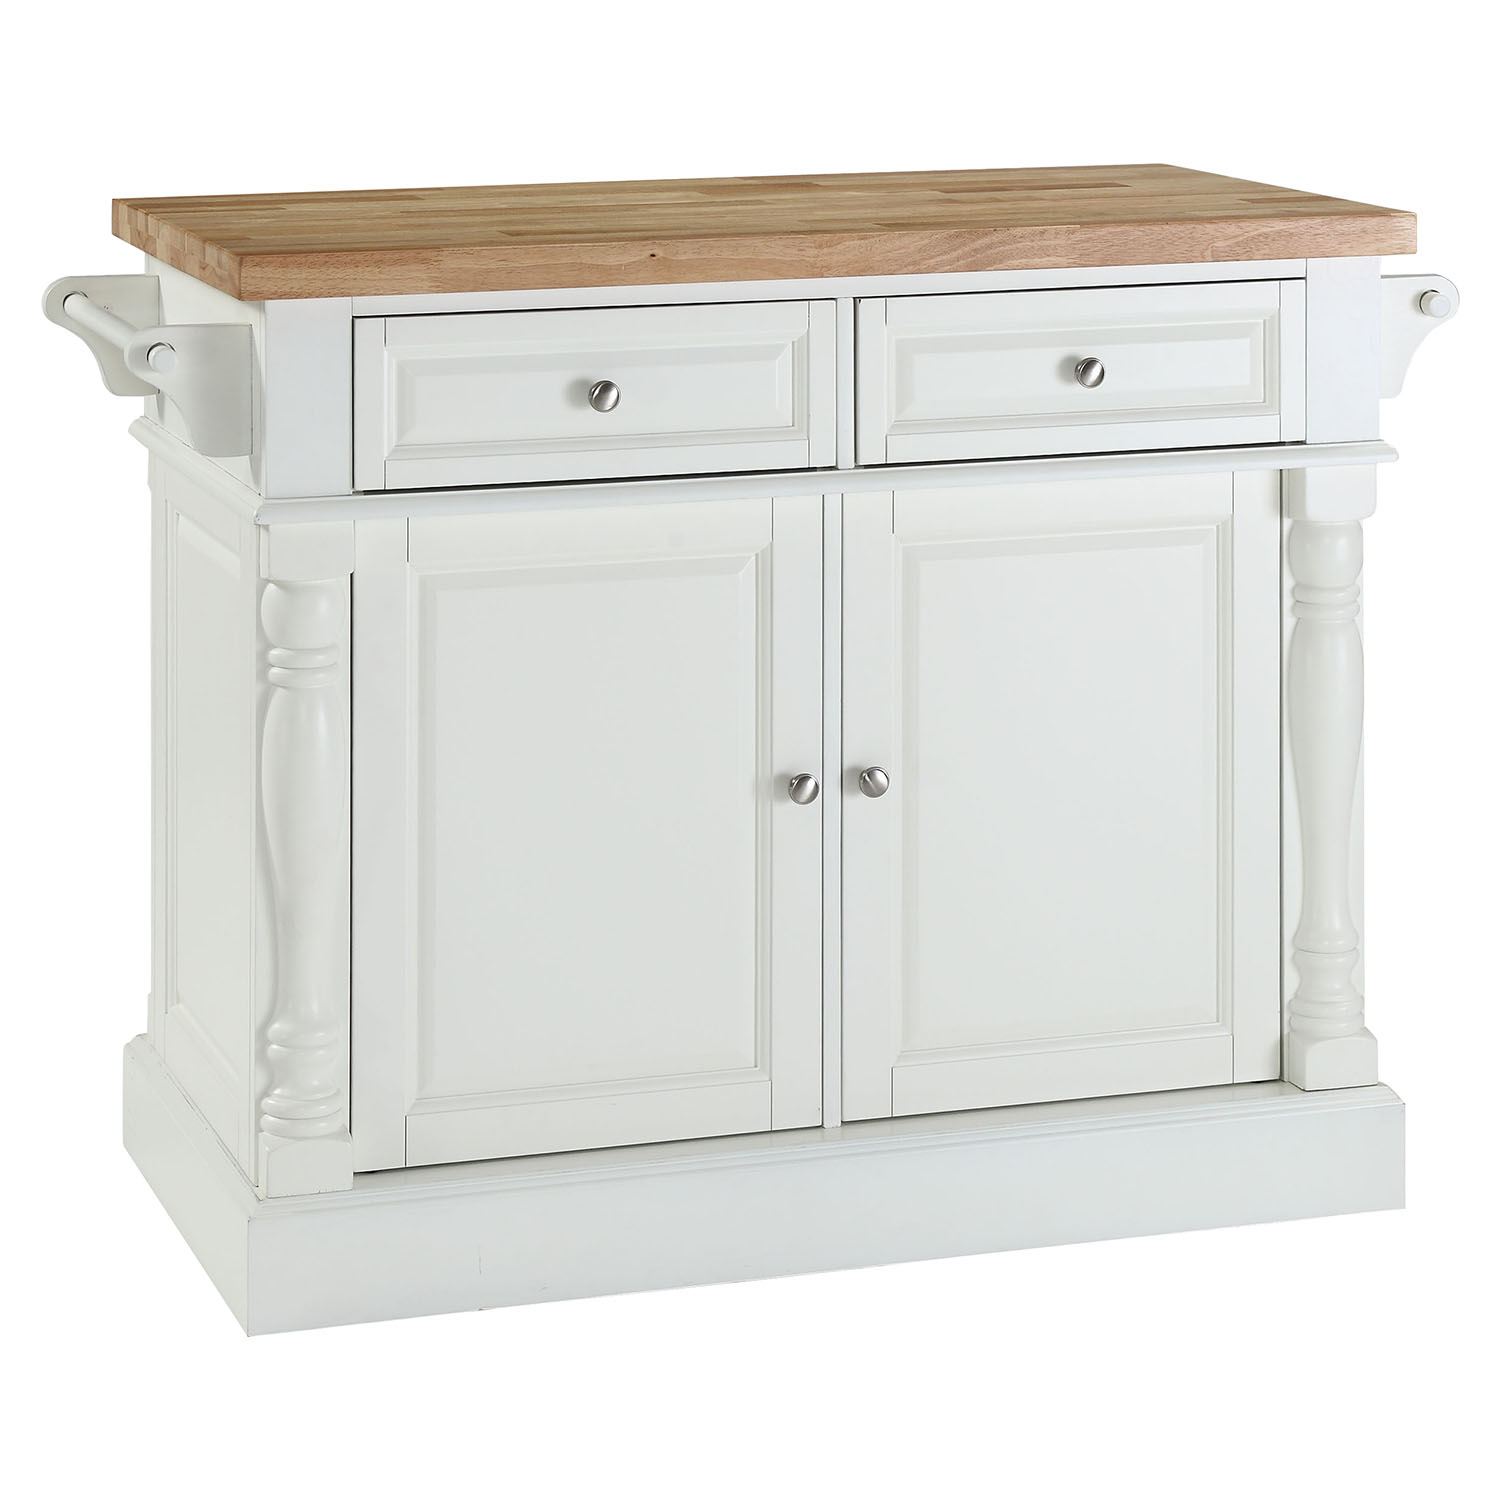 Butcher Block Top Kitchen Island - White DCG Stores